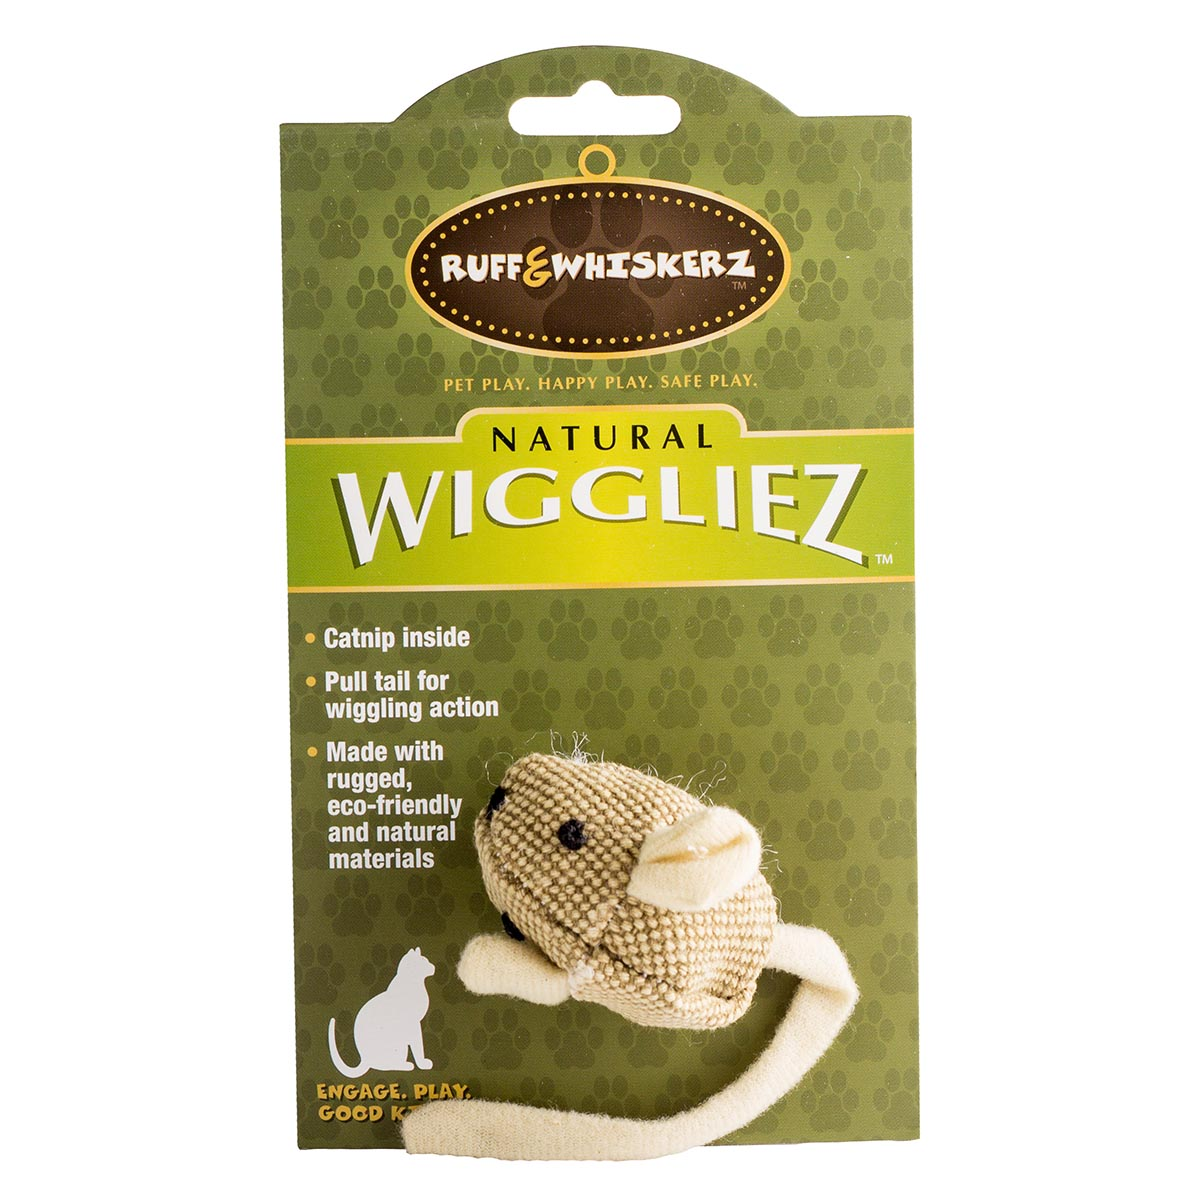 Wildlife Wiggliez